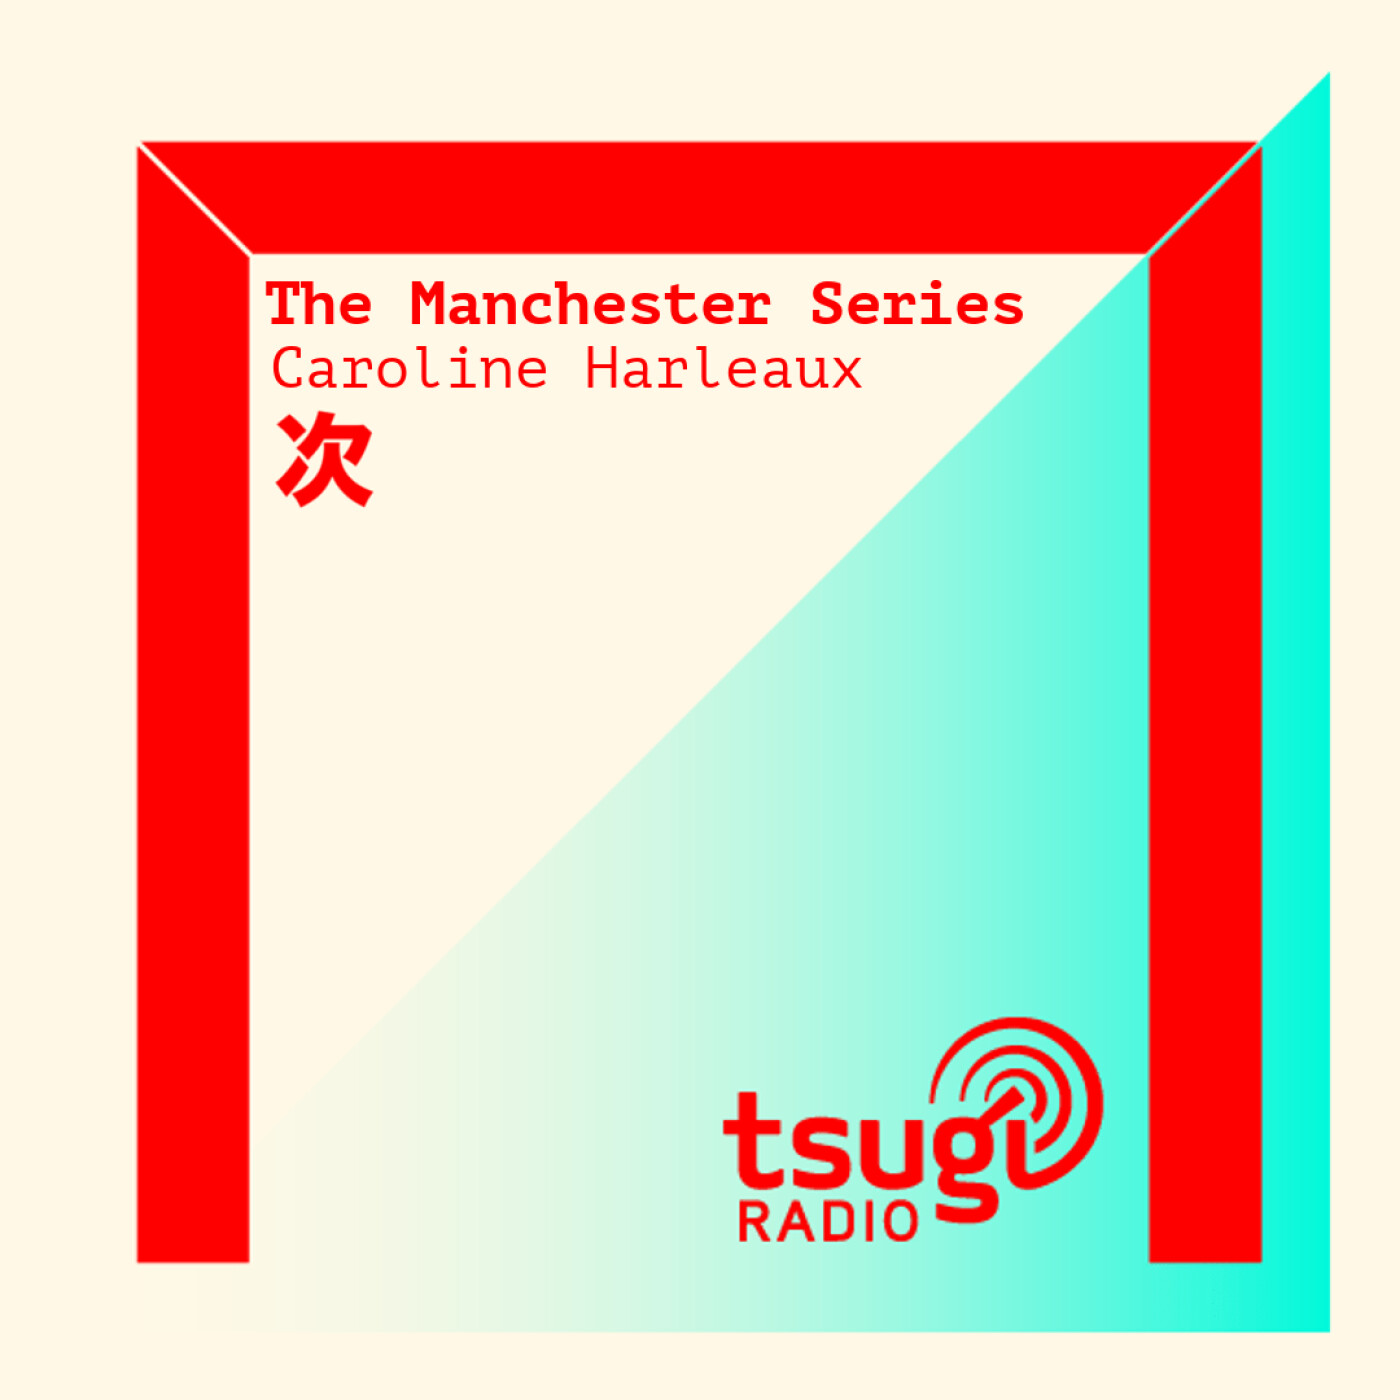 The Manchester Series avec Dylan (label Melodic)